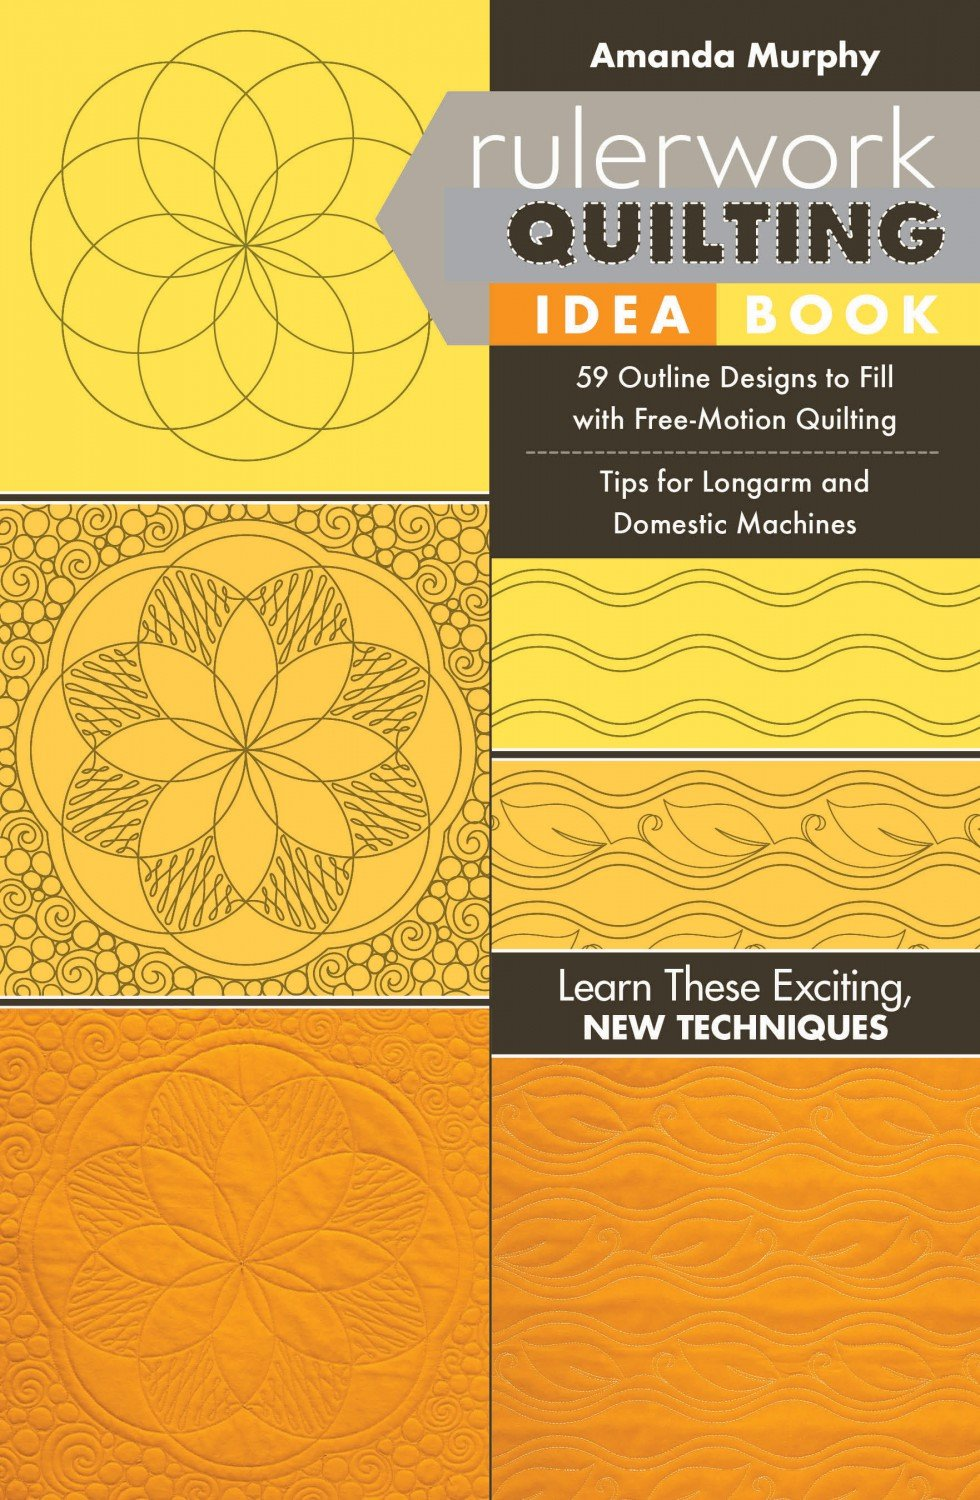 Rulerwork Quilting Idea Book: 59 Outline Designs to Fill with Free-Motion Quilting Tips for Longarm and Domestic Machines  by Amanda Murphy